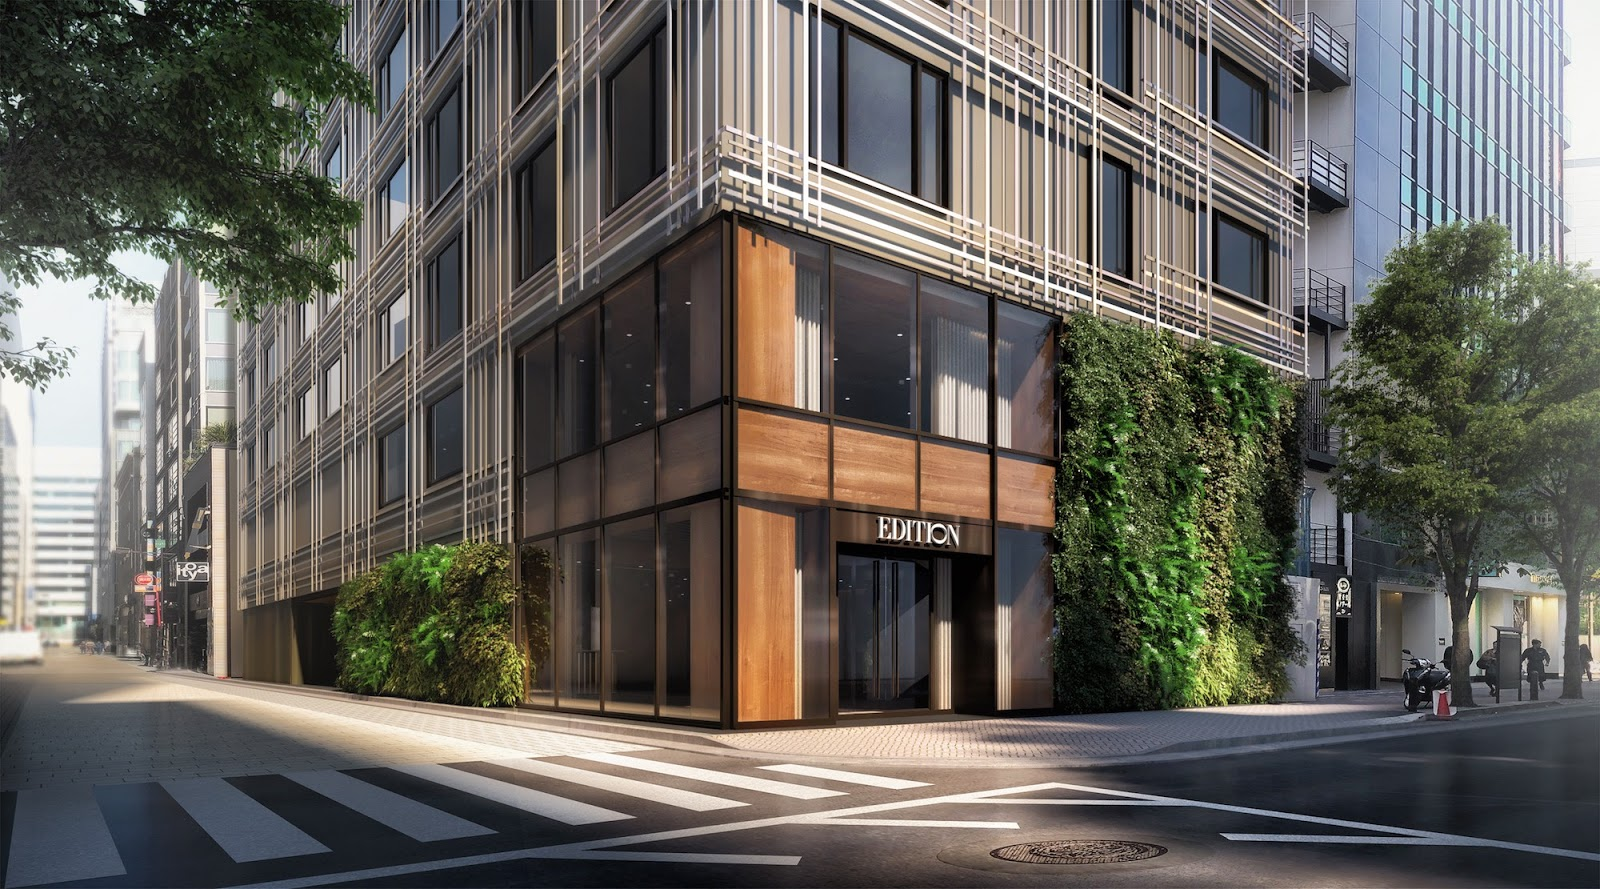 Edition Hotel Group Announces Eight New Hotel Openings